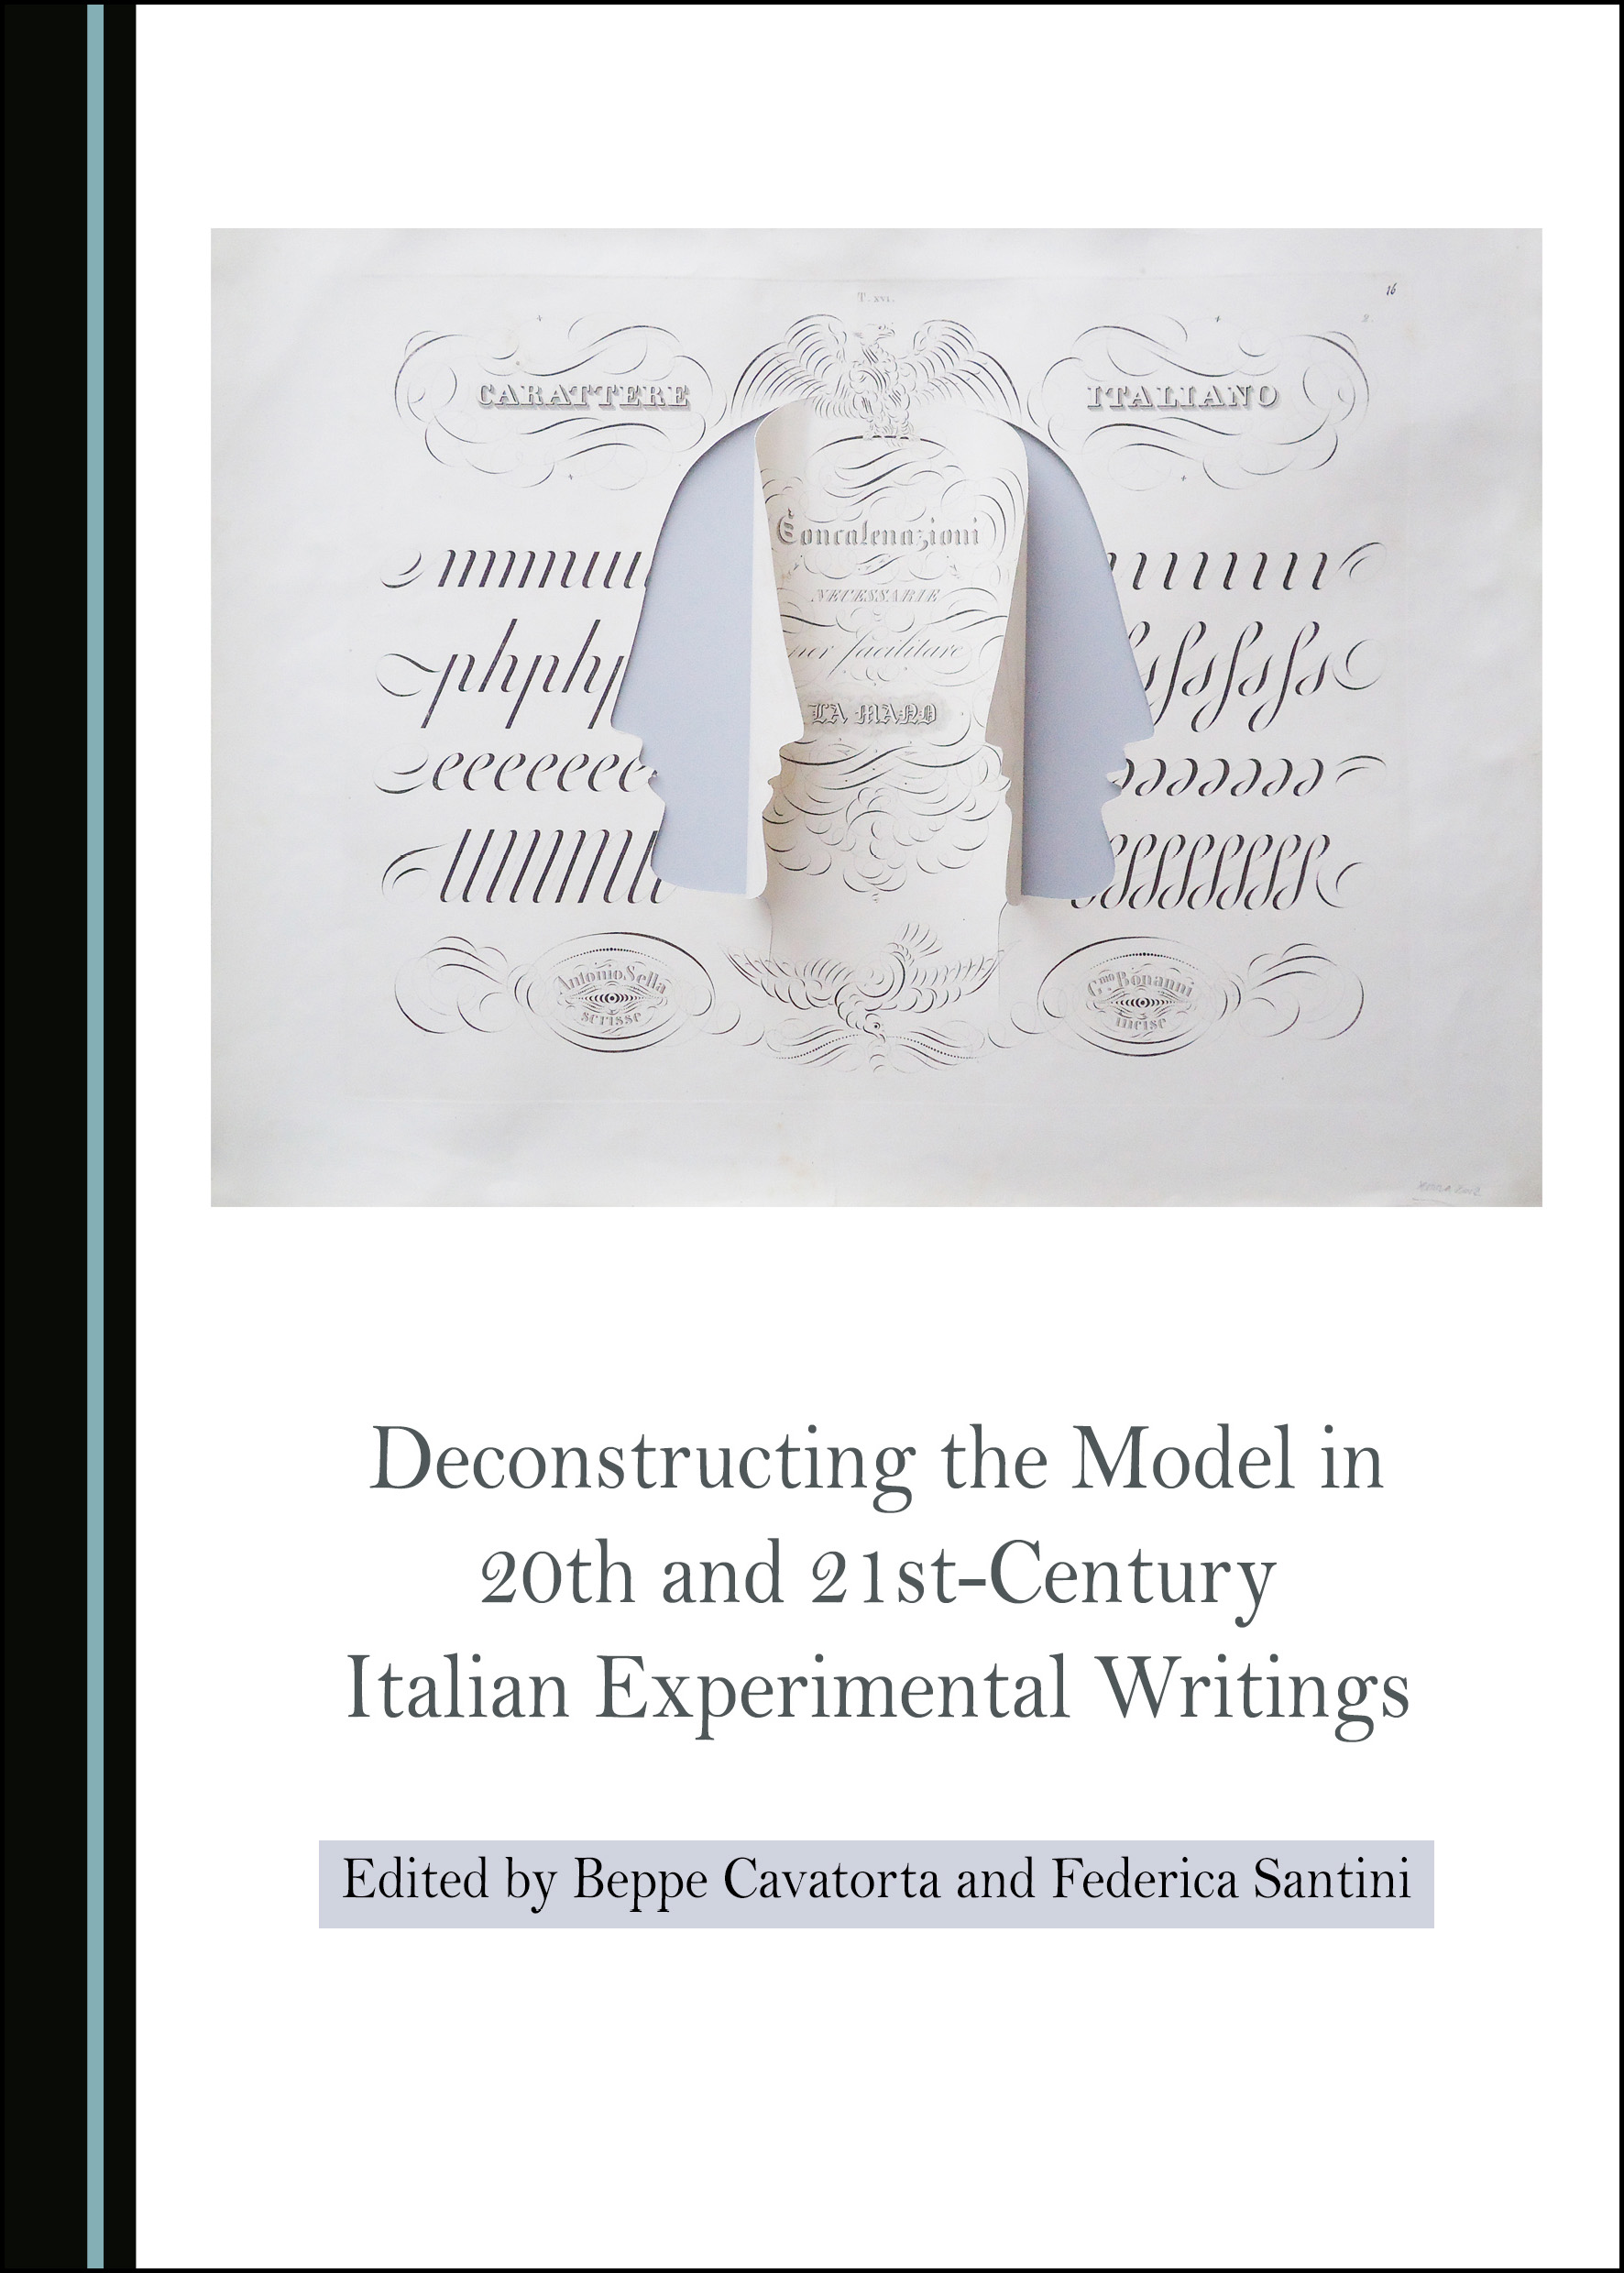 Deconstructing the Model in 20th and 21st-Century Italian Experimental Writings